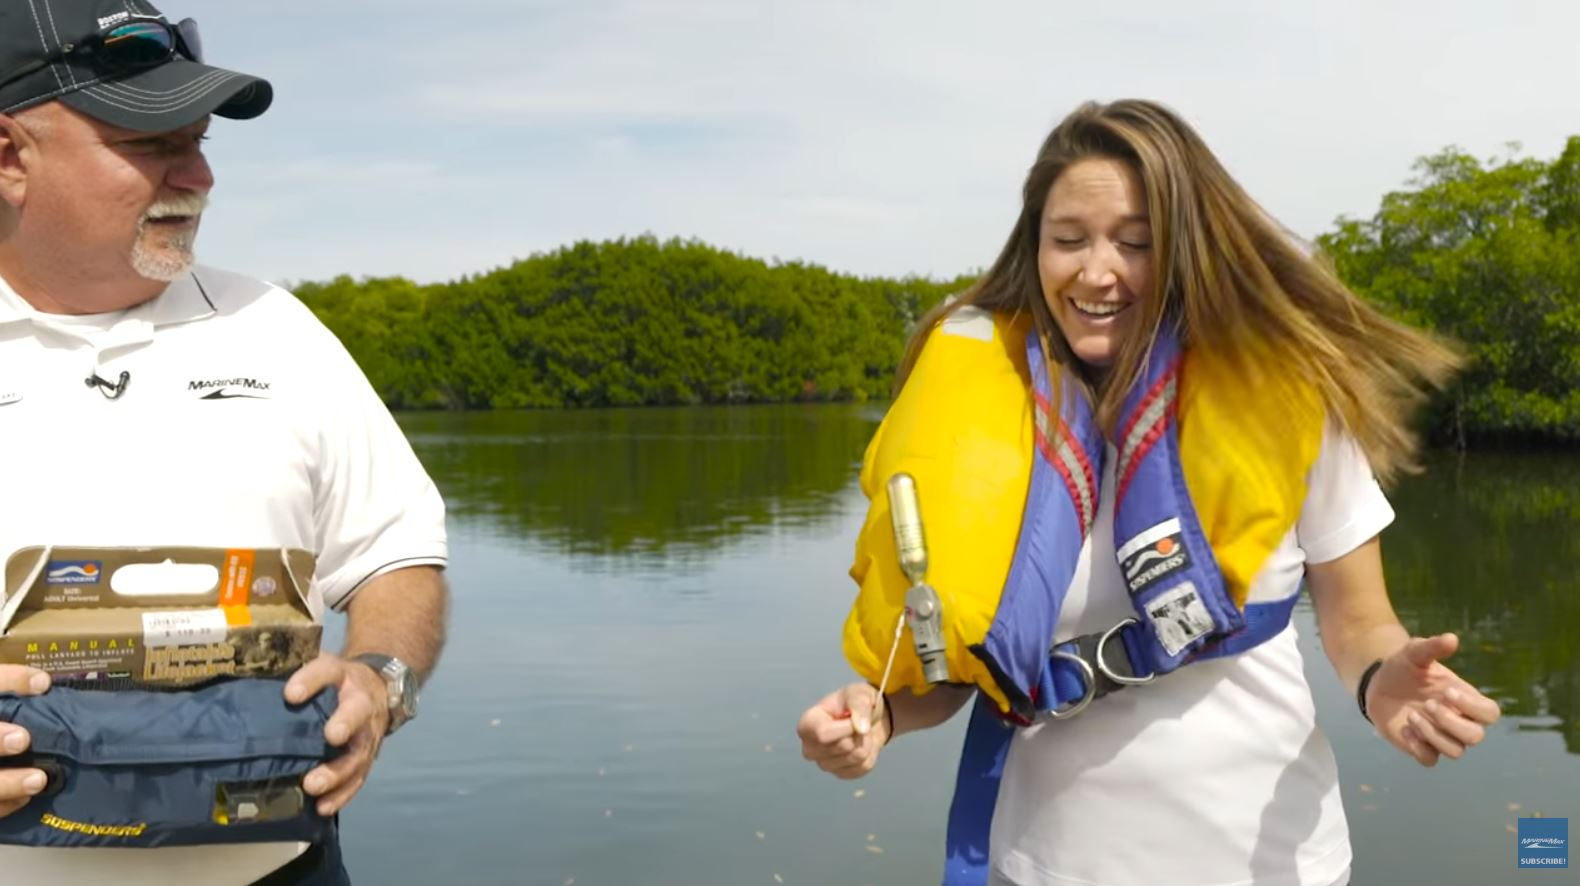 Boating Tips Video for Personal Flotation Devices